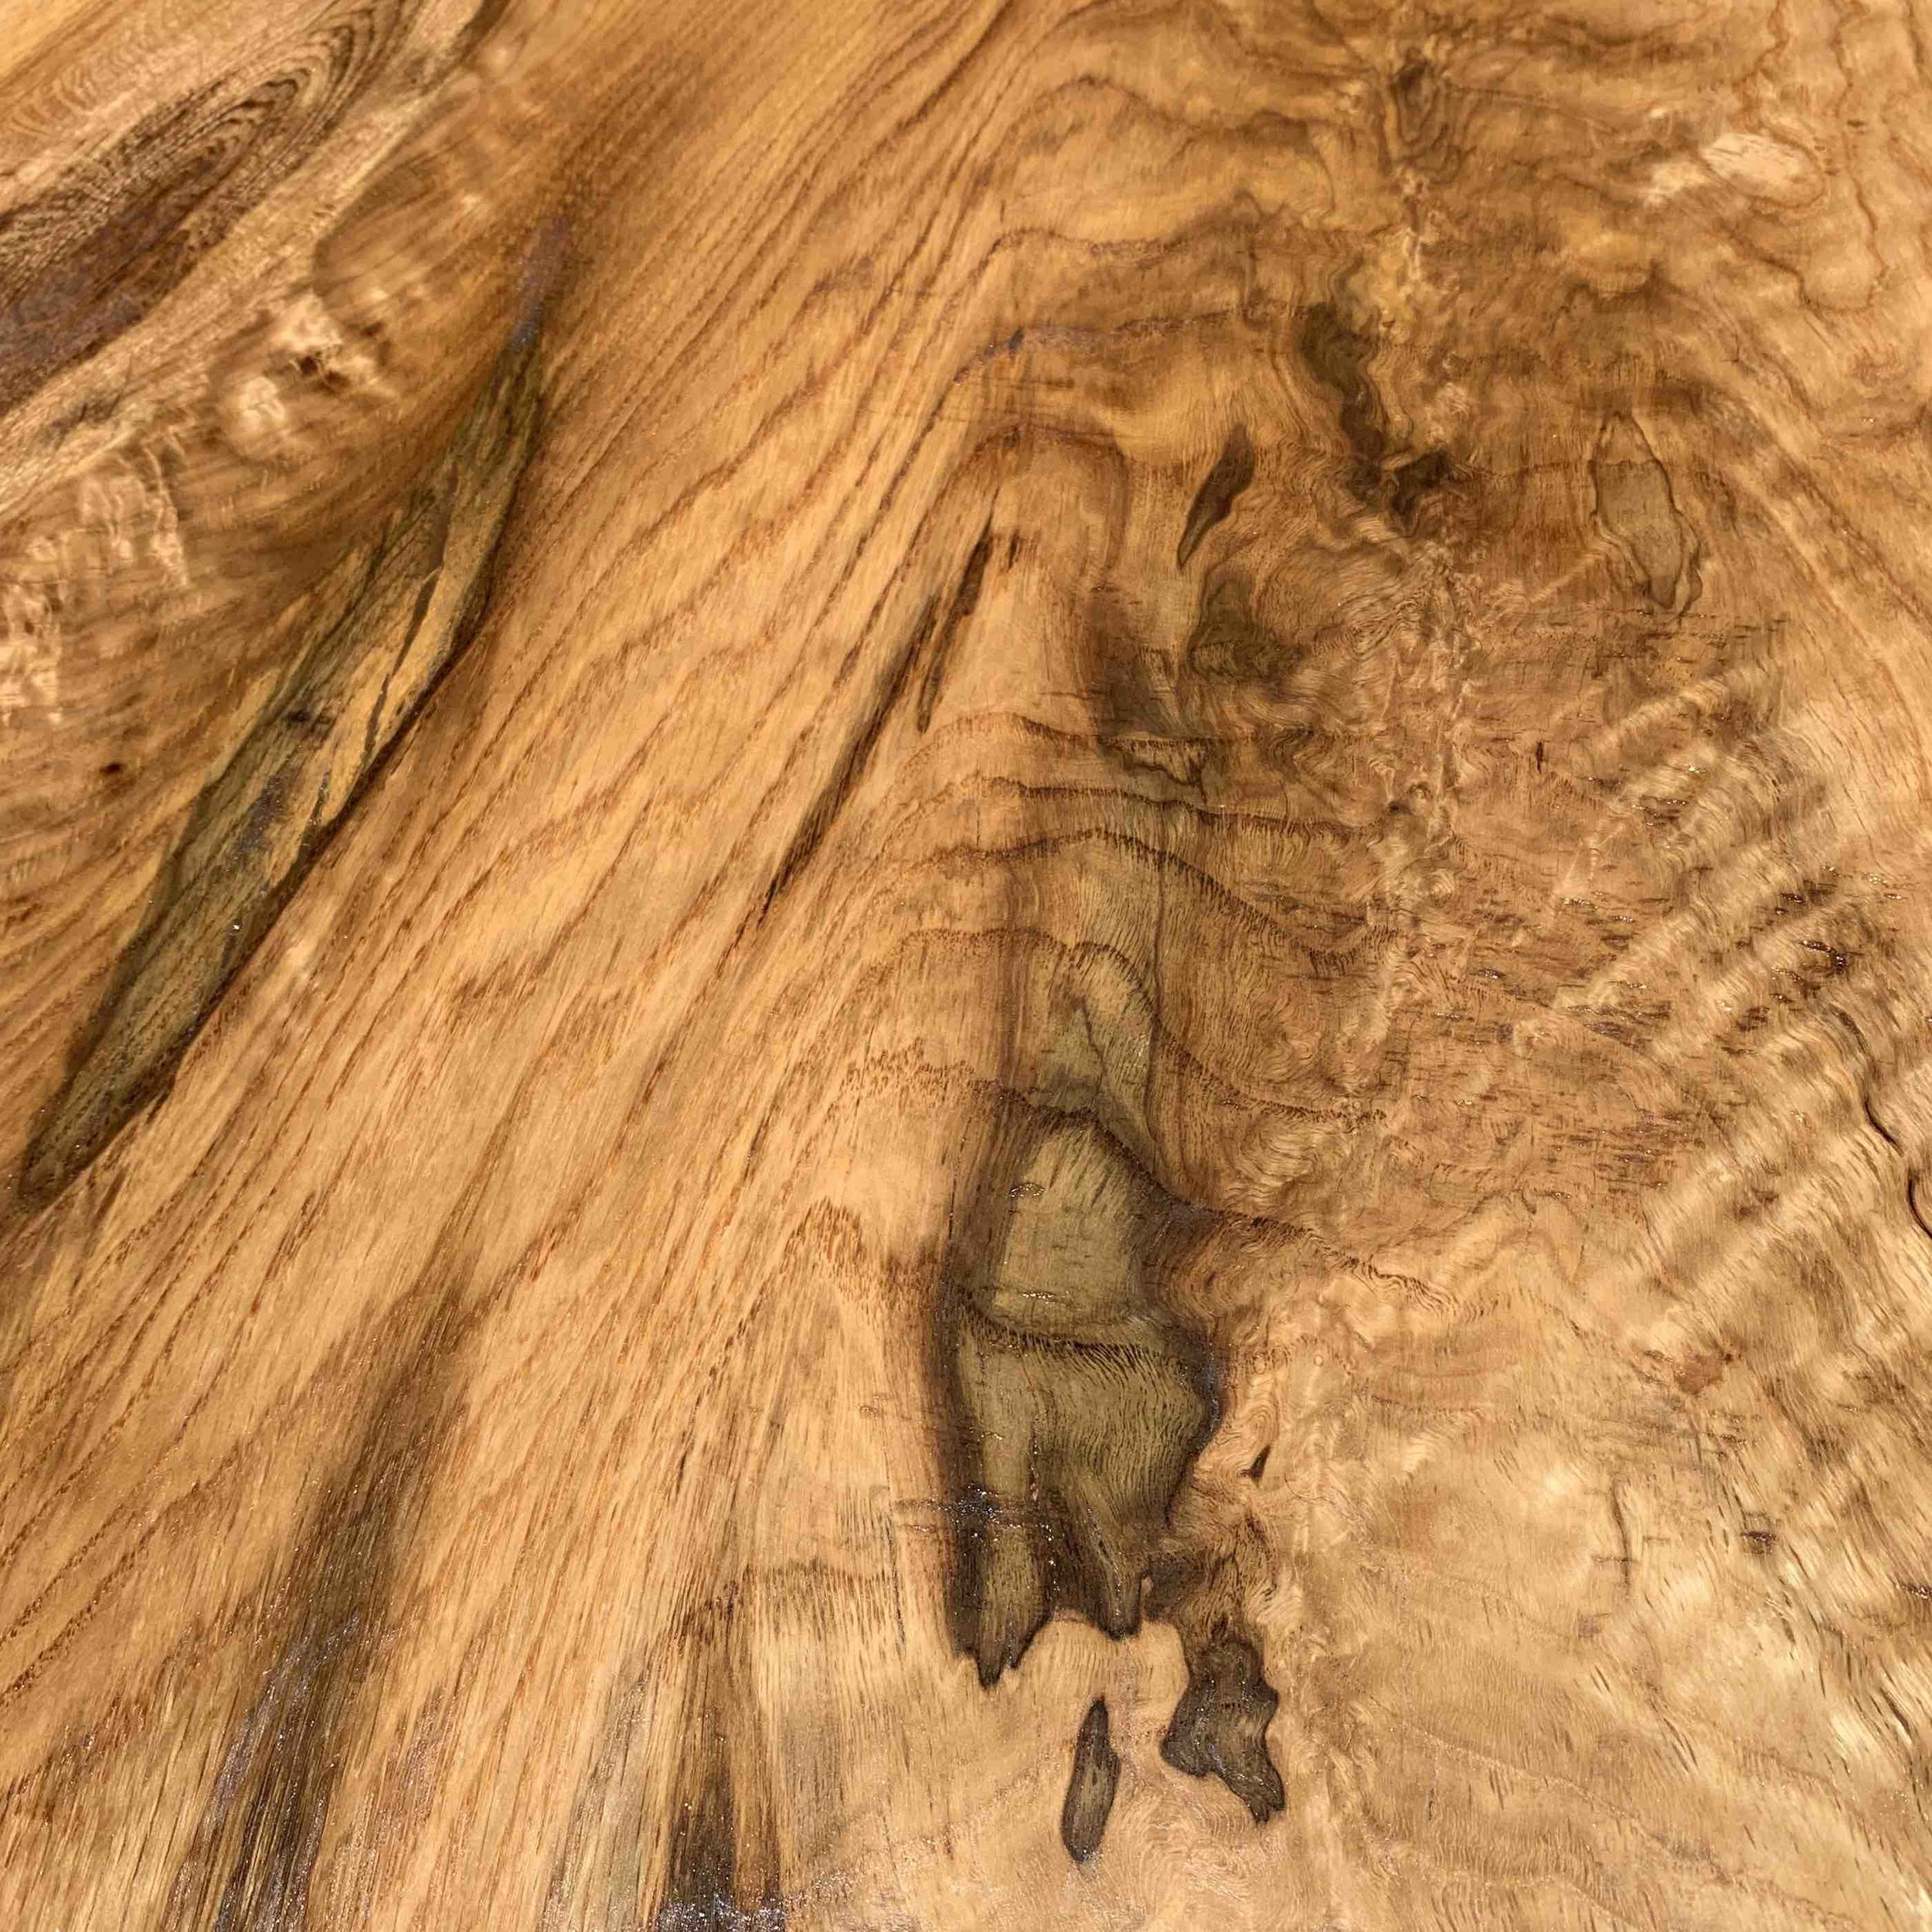 white oak detail #1_small.JPG